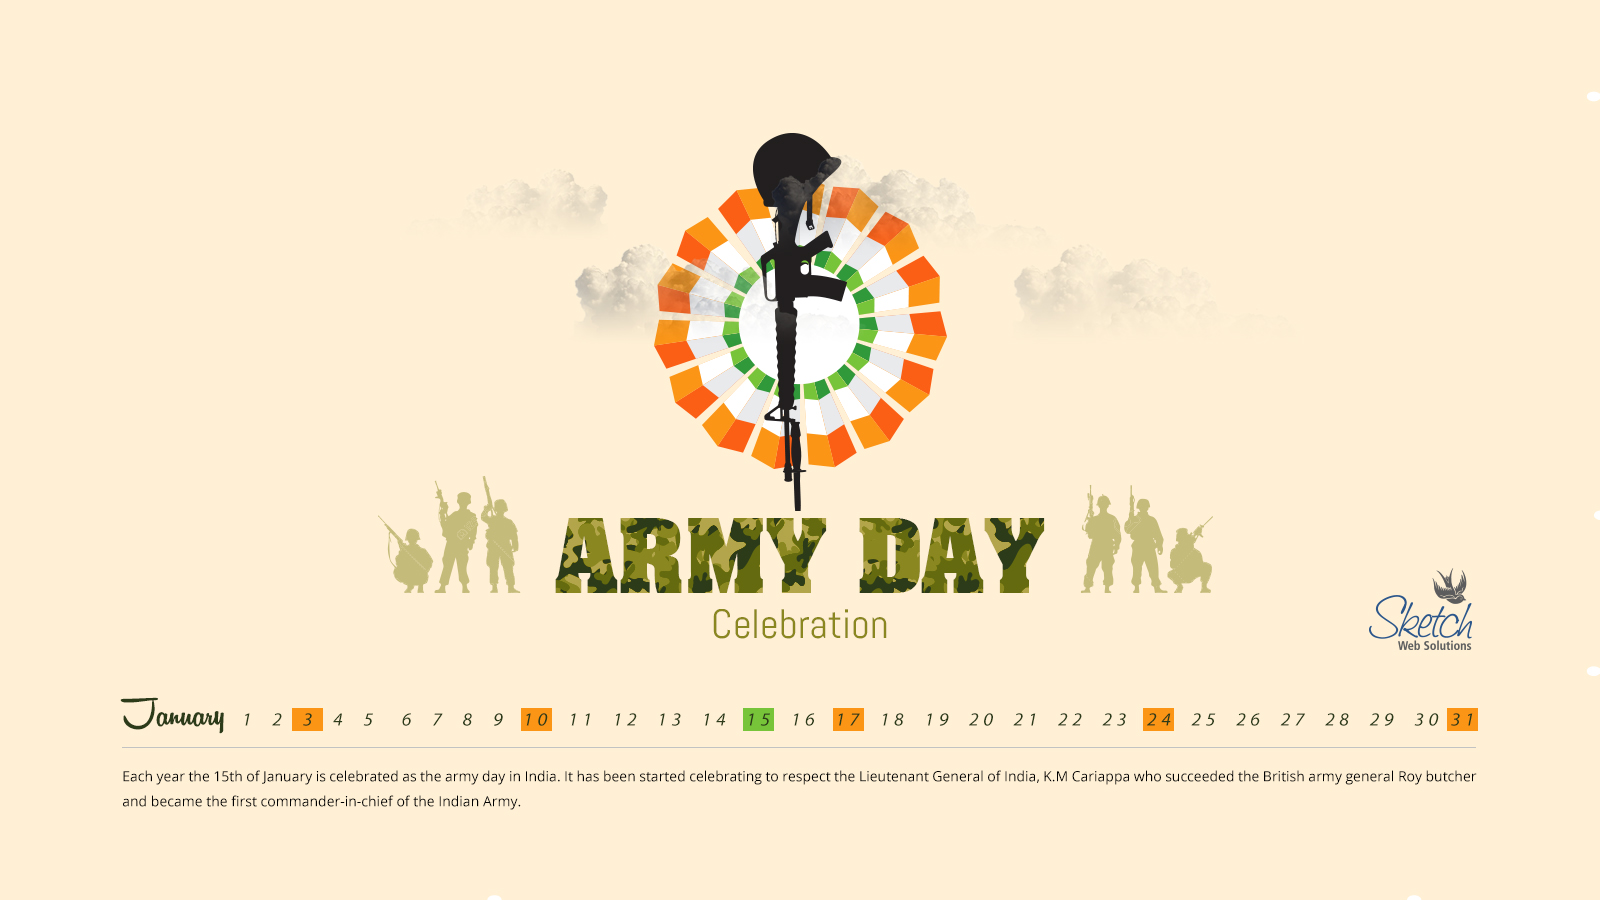 army day day 16